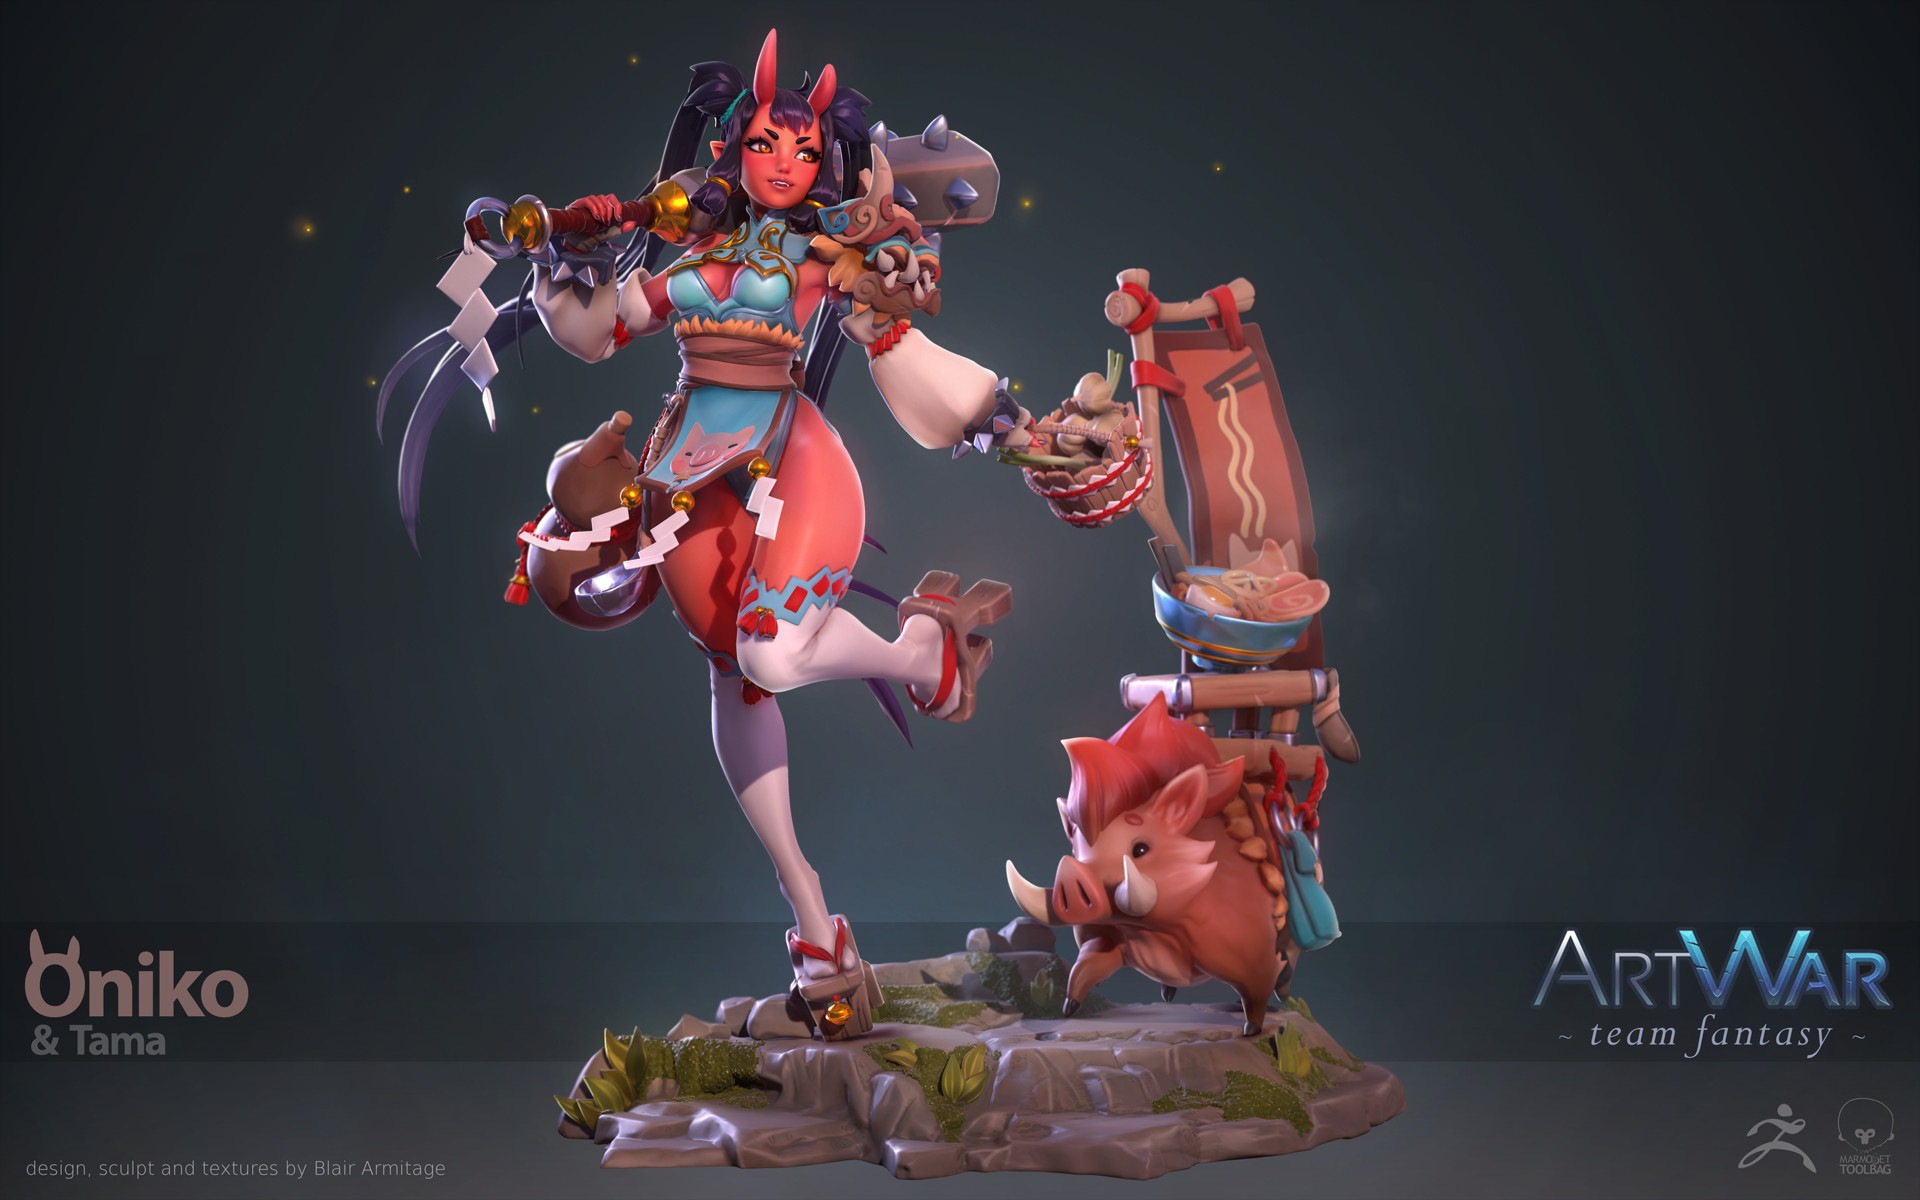 Oniko & Tama: Sculpting and Texturing